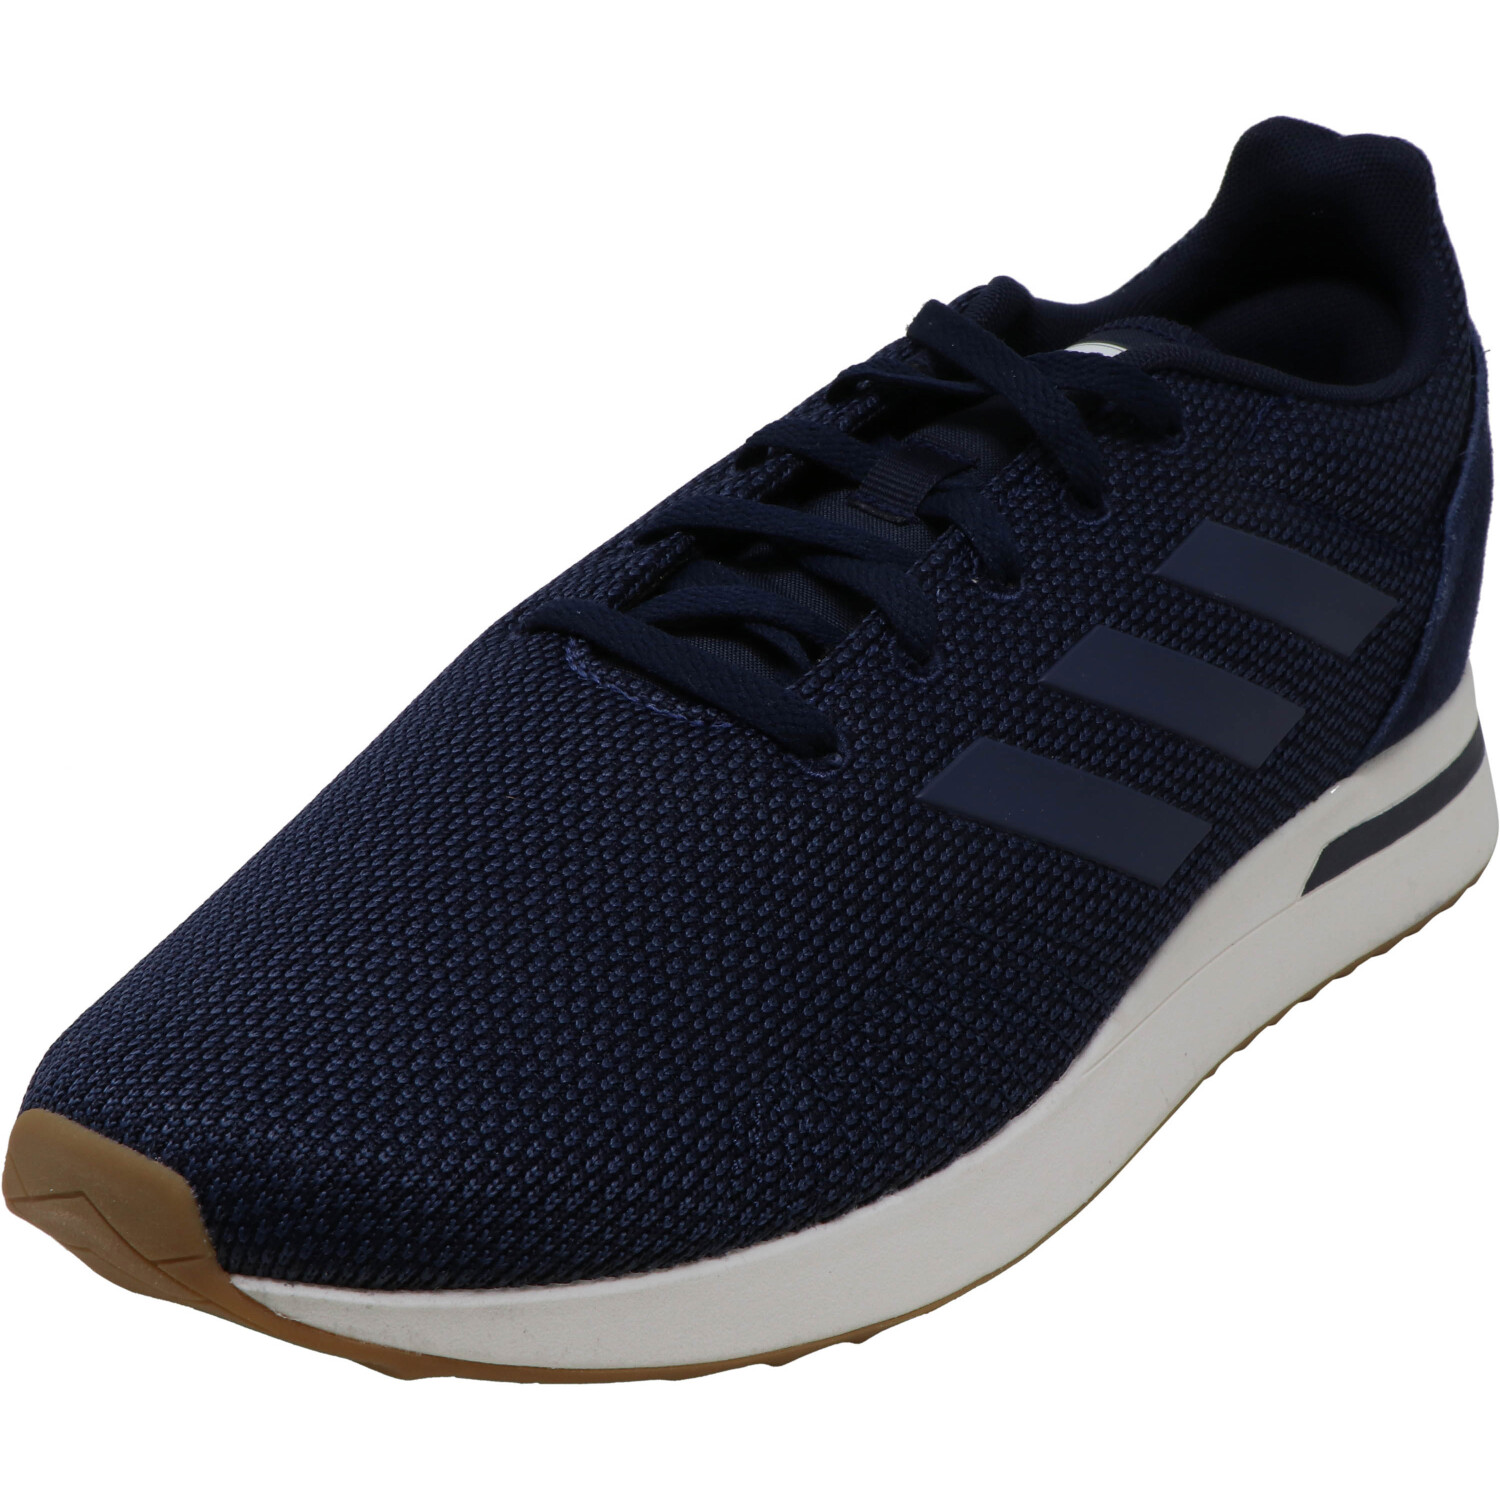 Adidas Men's Run70S Legend Ink / Trace Blue Cloud White Low Top Mesh Running - 11.5M